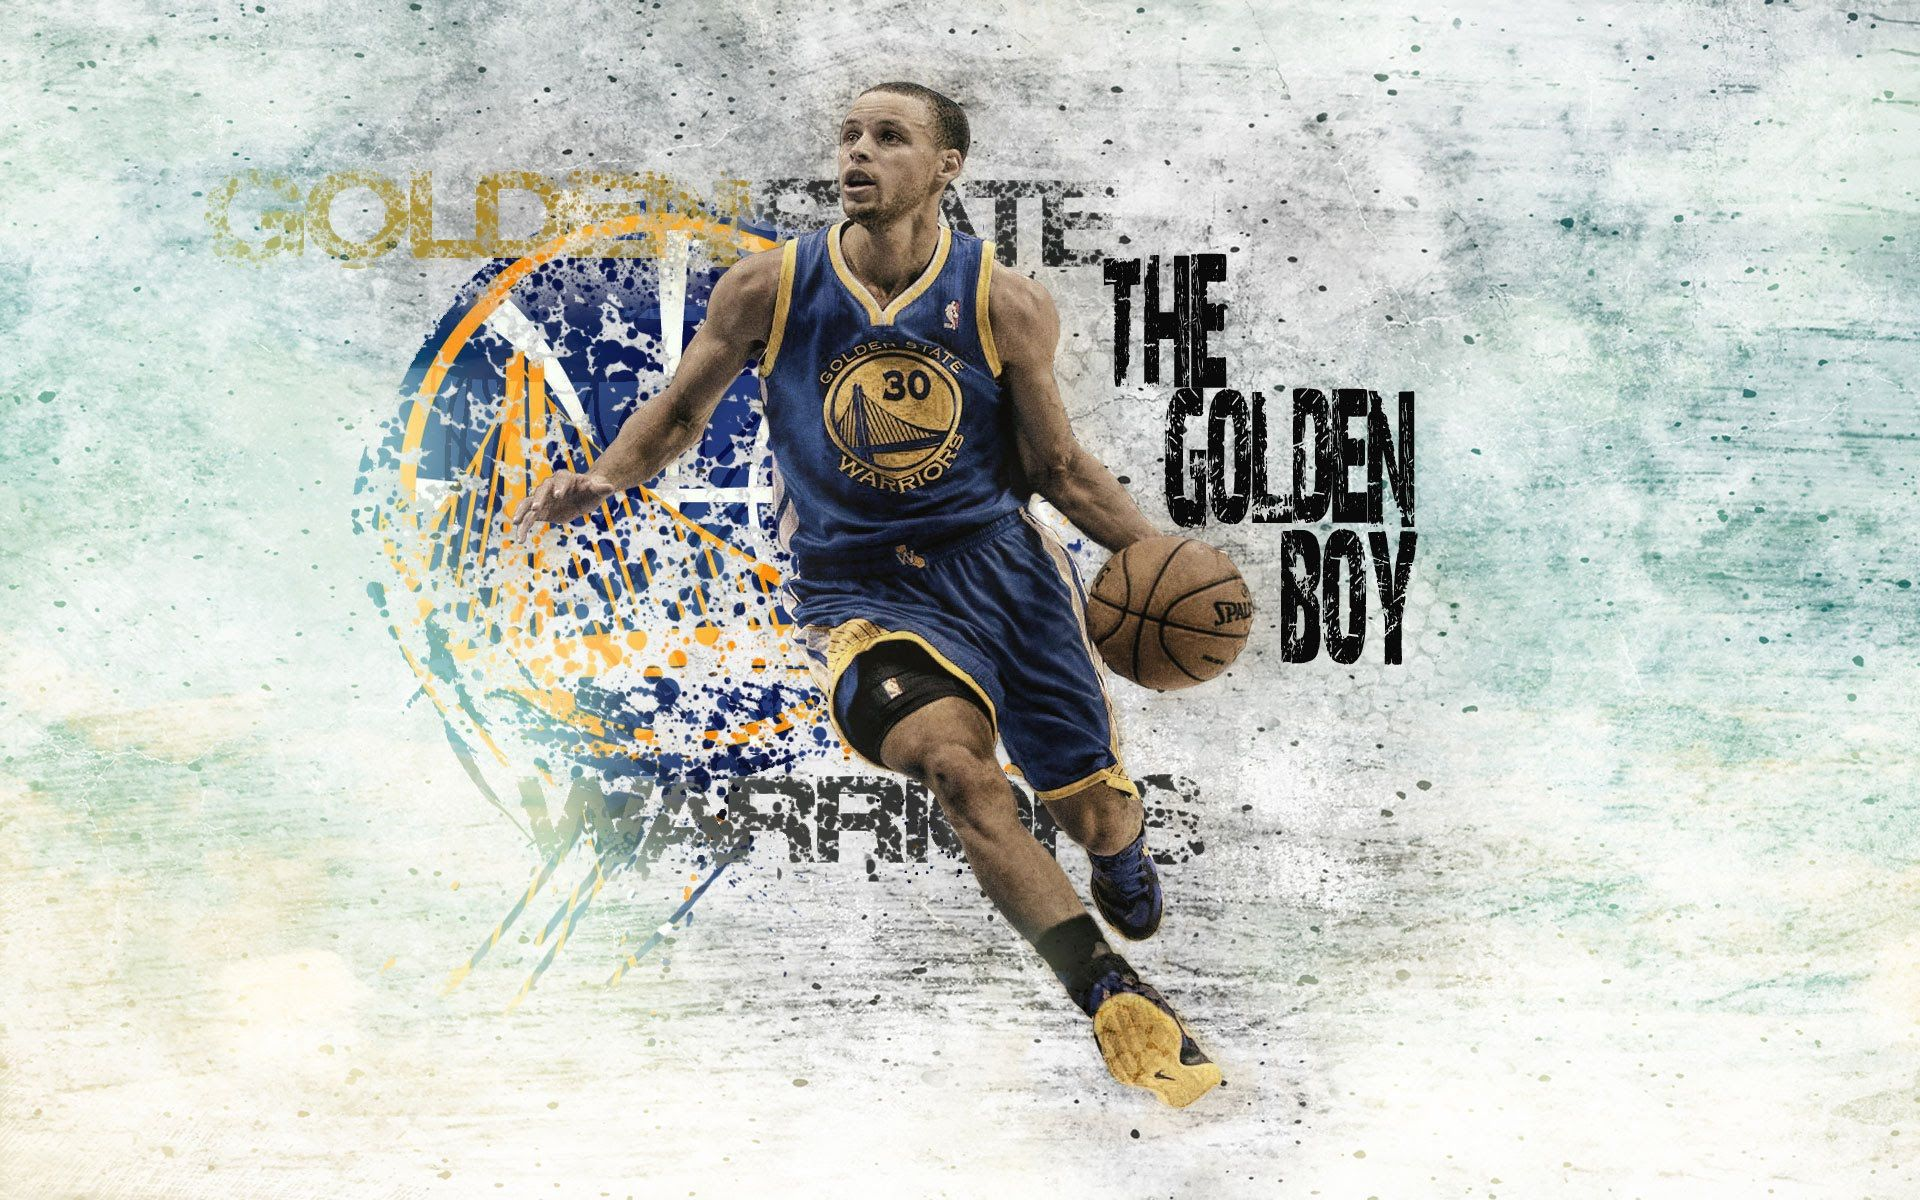 Stephen Curry 2015 The Golden Boy As They Call Him Stephen